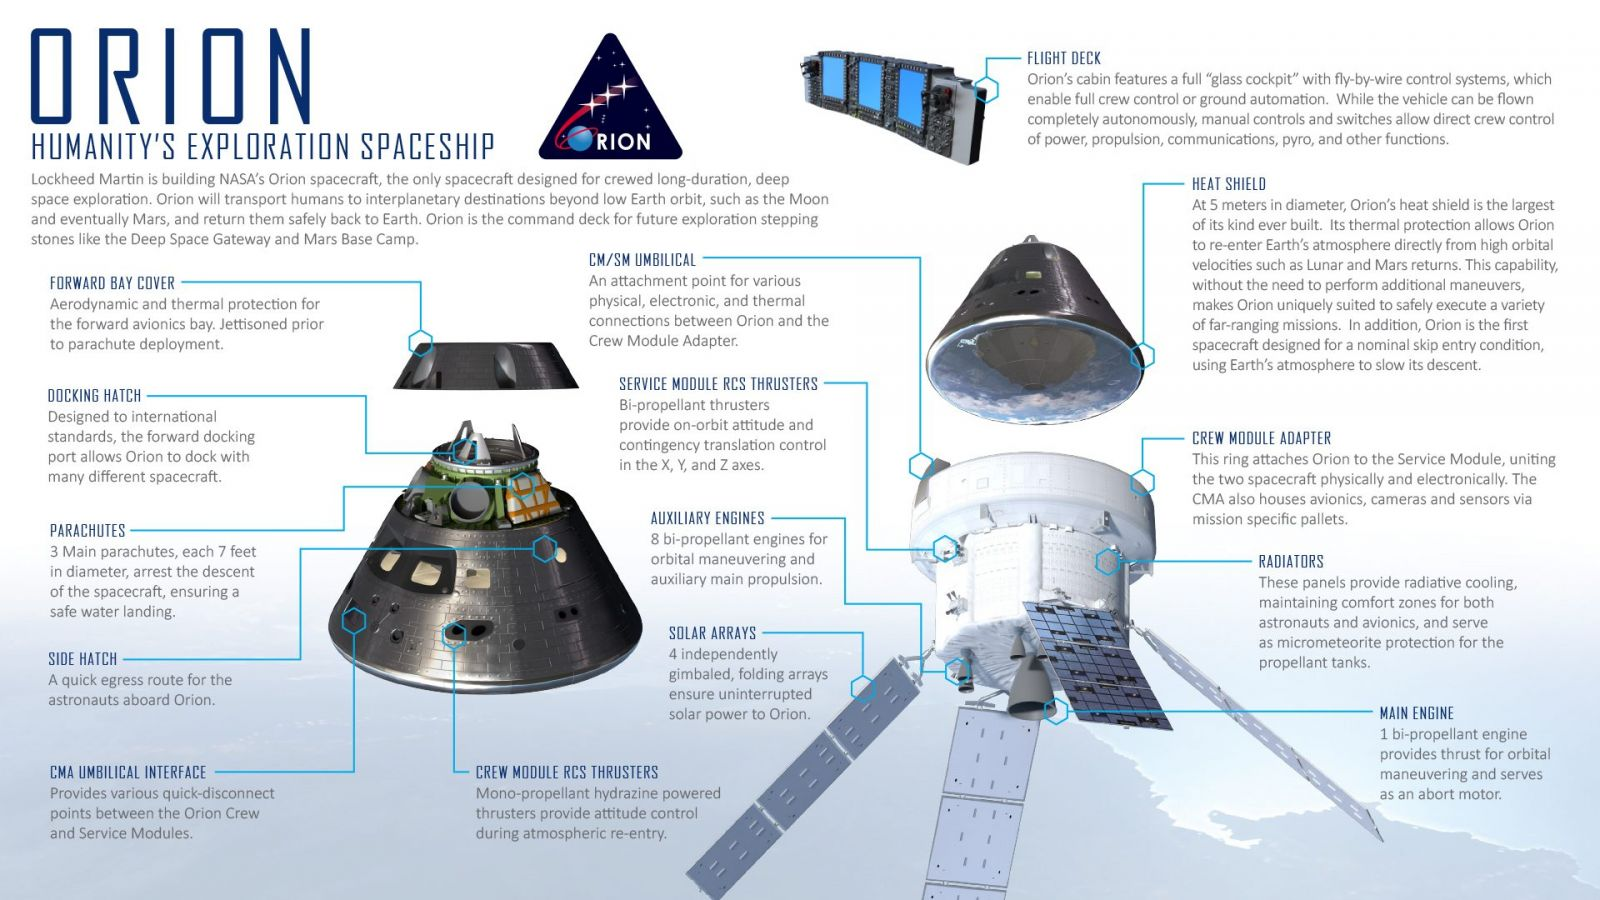 Infographic detailing the Orion spacecraft's components. Image Credit: Lockheed Martin